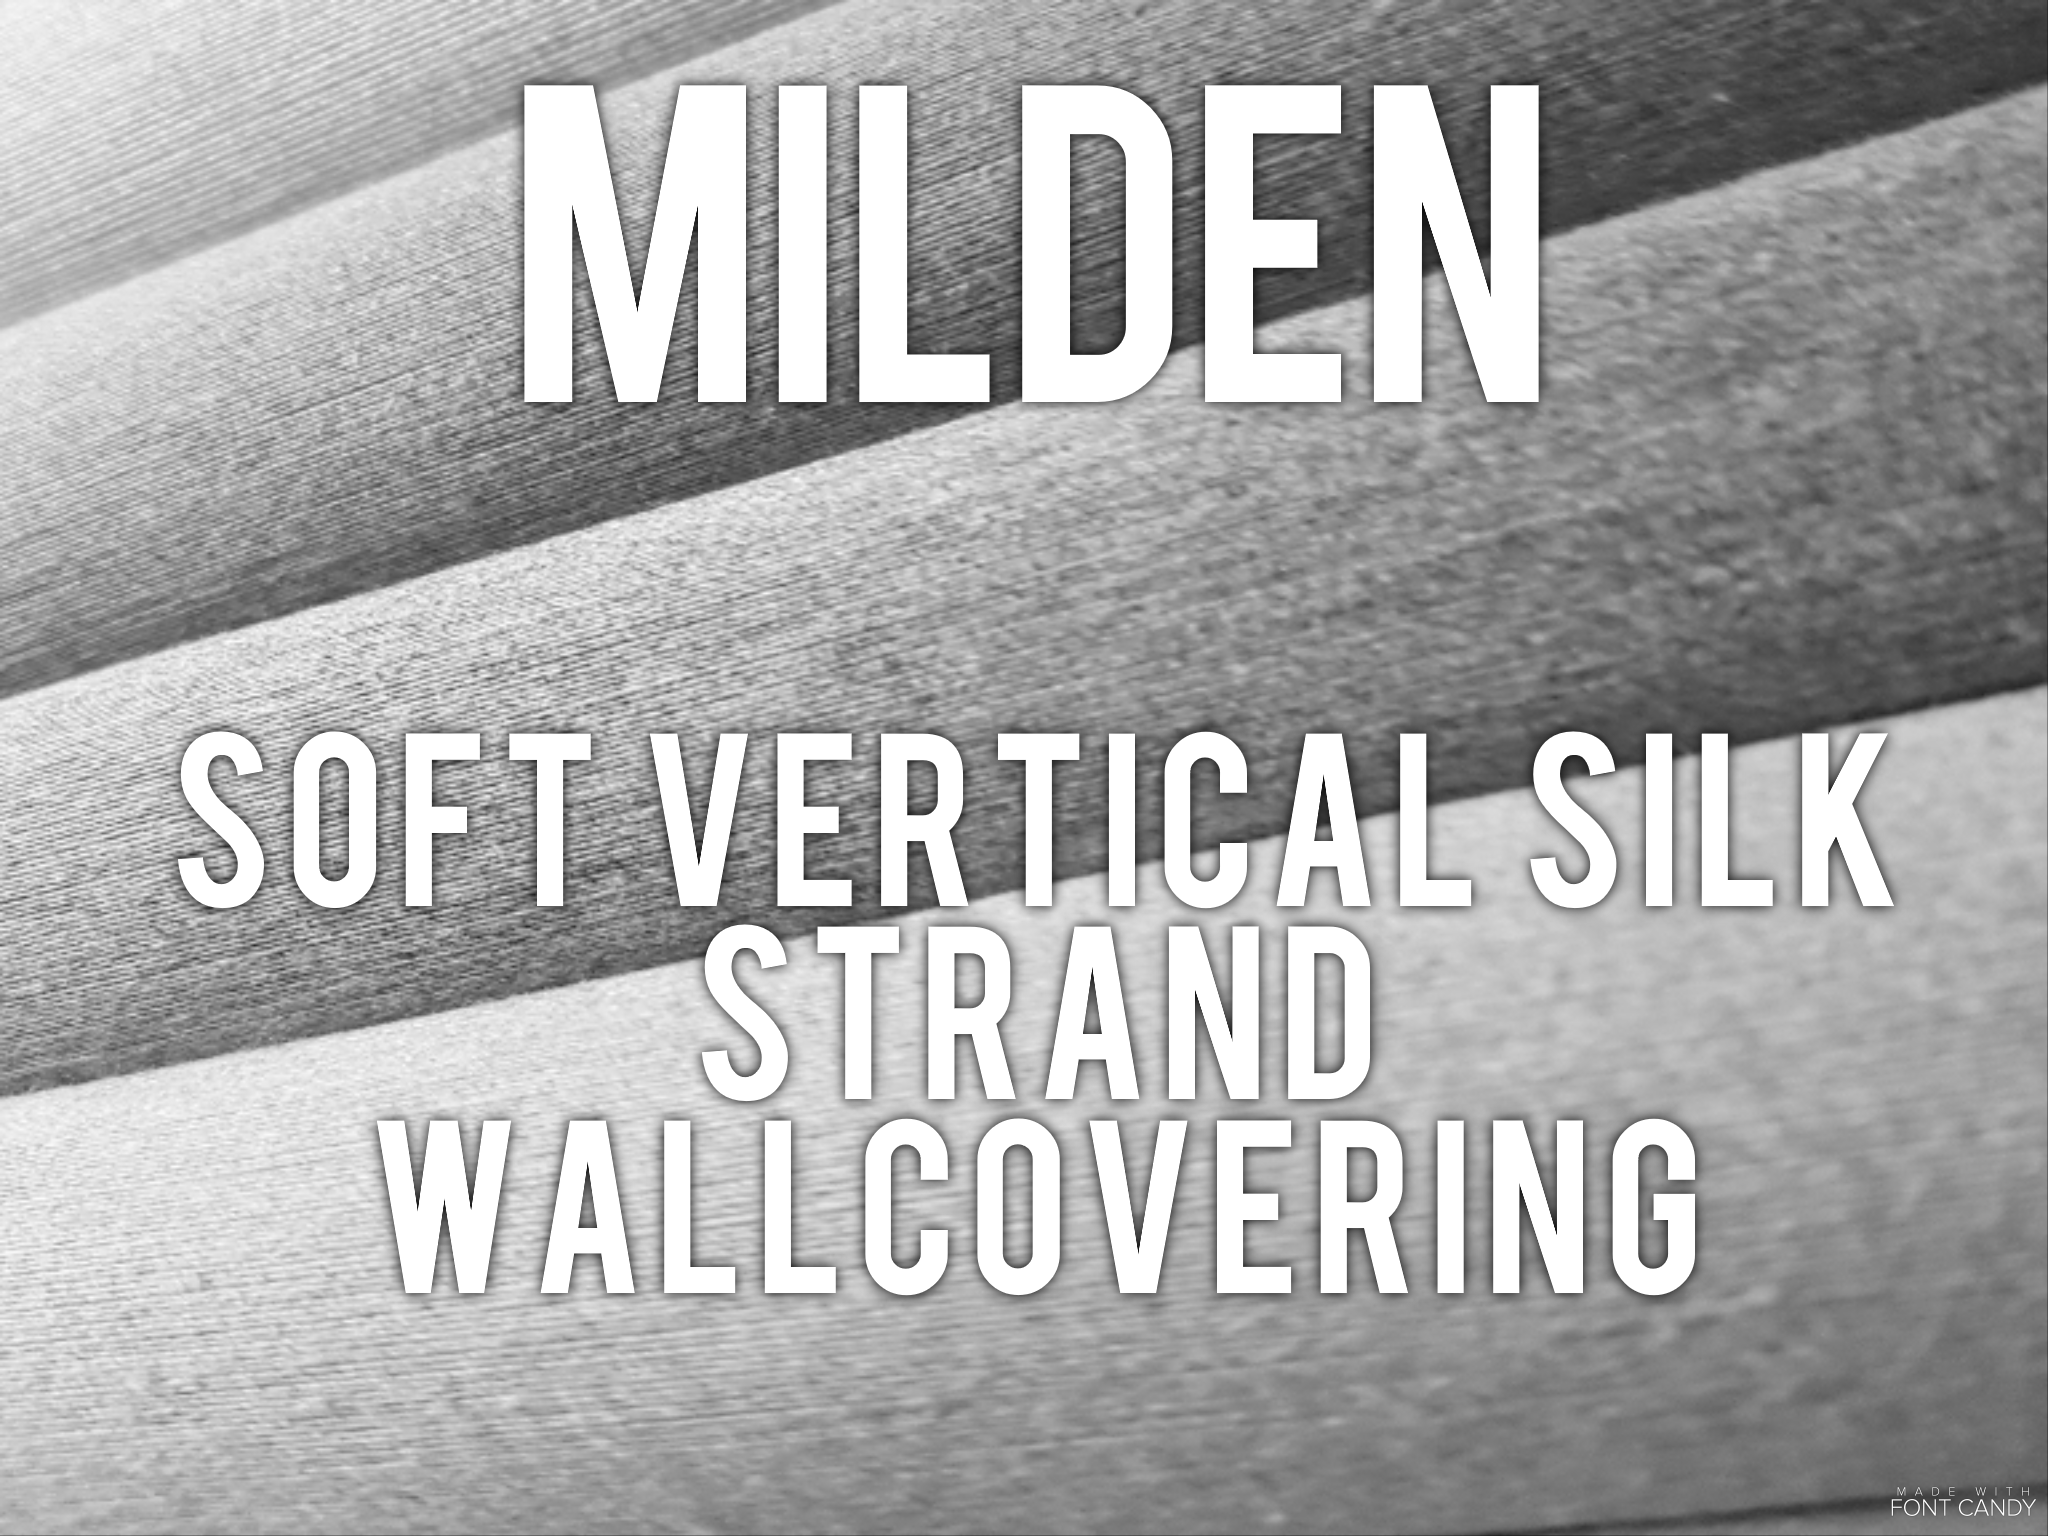 Milden - soft vertical silk strand wallcovering